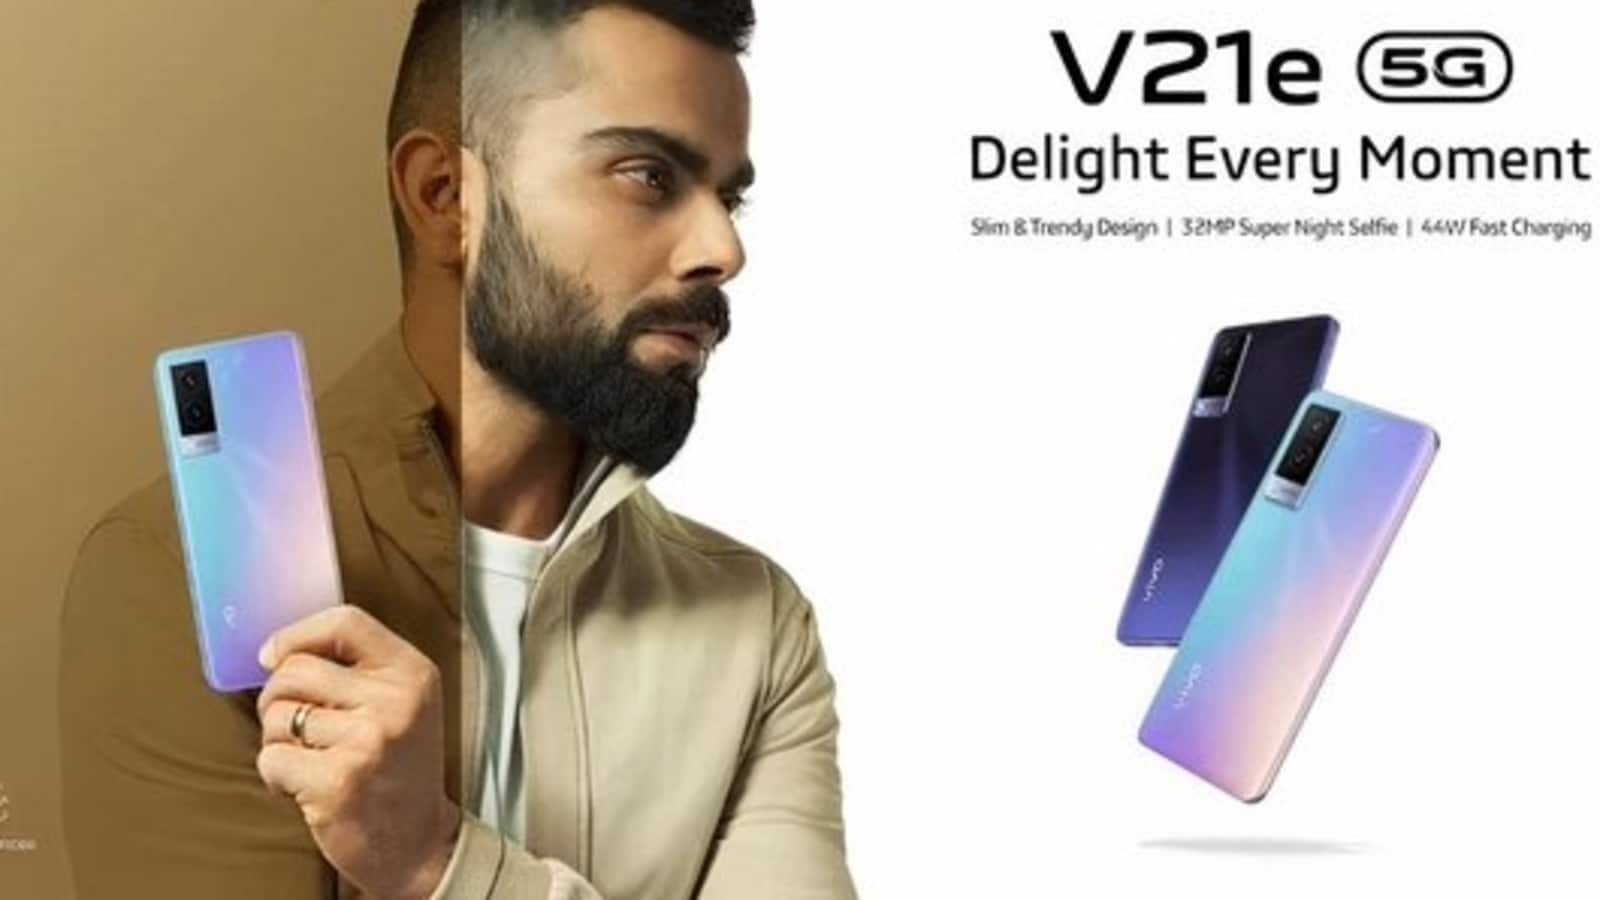 The Vivo V21e poster with Virat Kohli has been leaked online!  Just see what's to come soon